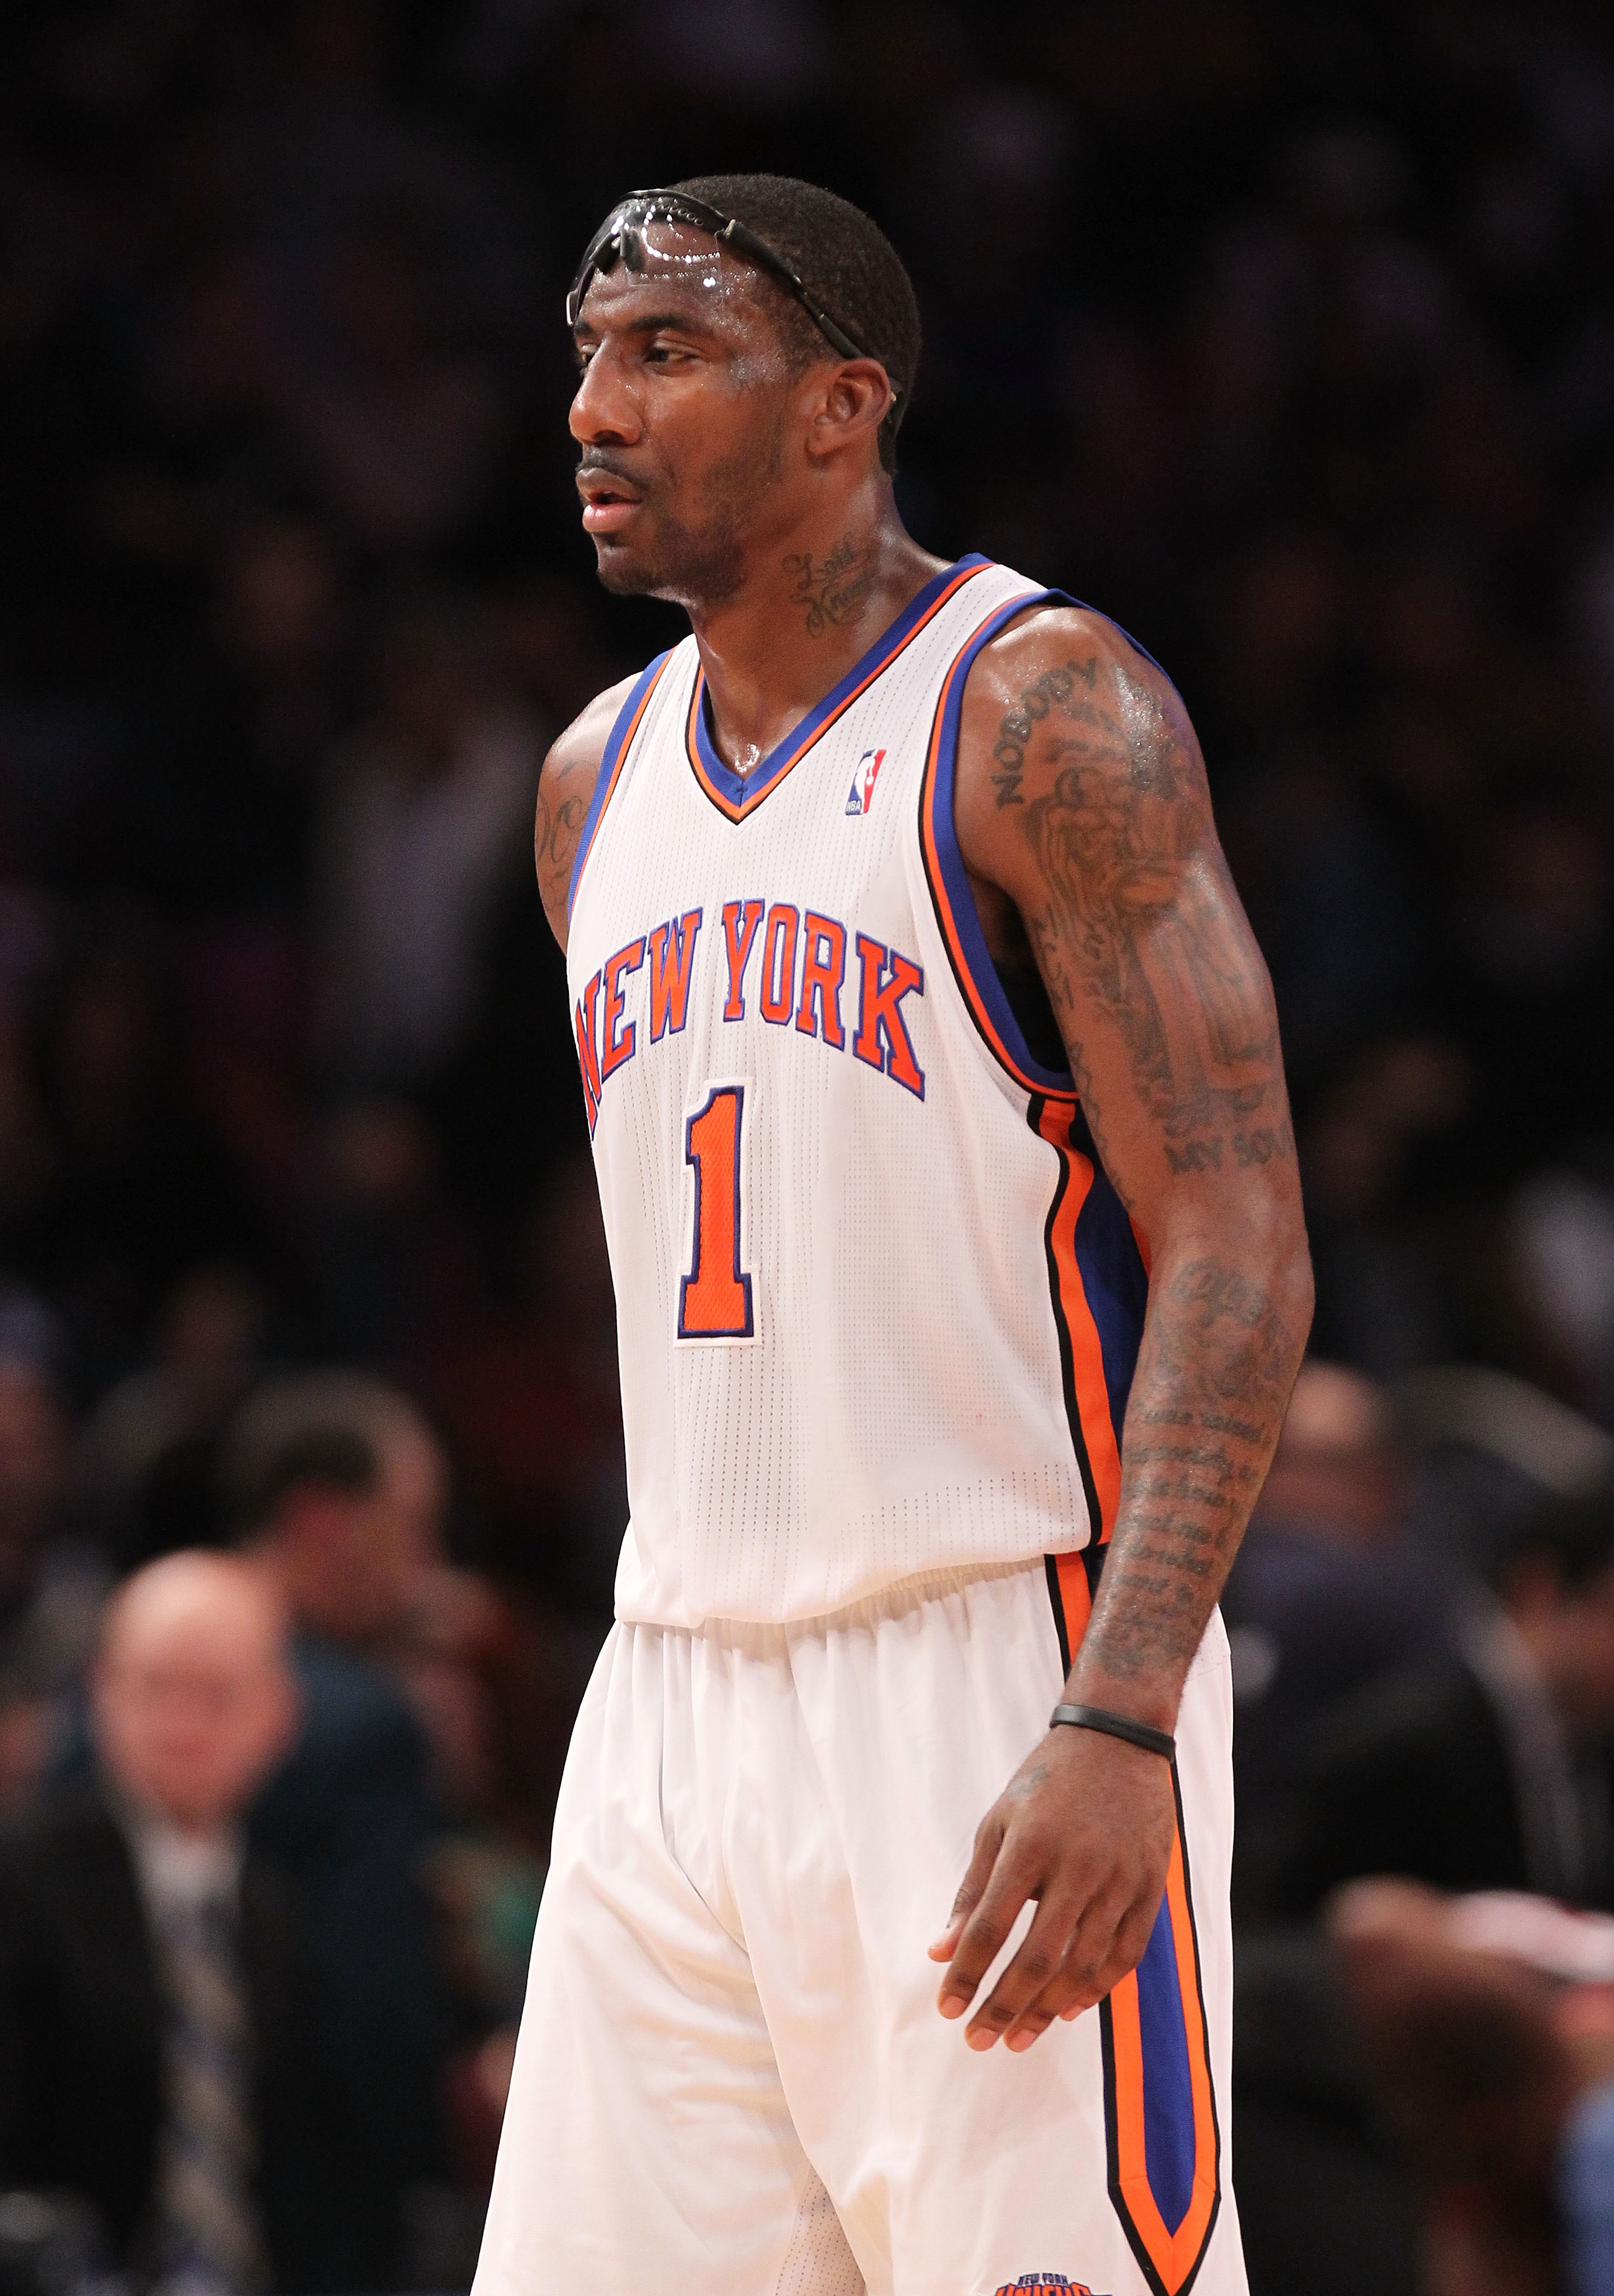 NEW YORK - OCTOBER 30:  Amar'e Stoudemire #1 of the New York Knicks walks down the court against the Portland Trail Blazers at Madison Square Garden on October 30, 2010 in New York City. NOTE TO USER: User expressly acknowledges and agrees that, by downlo